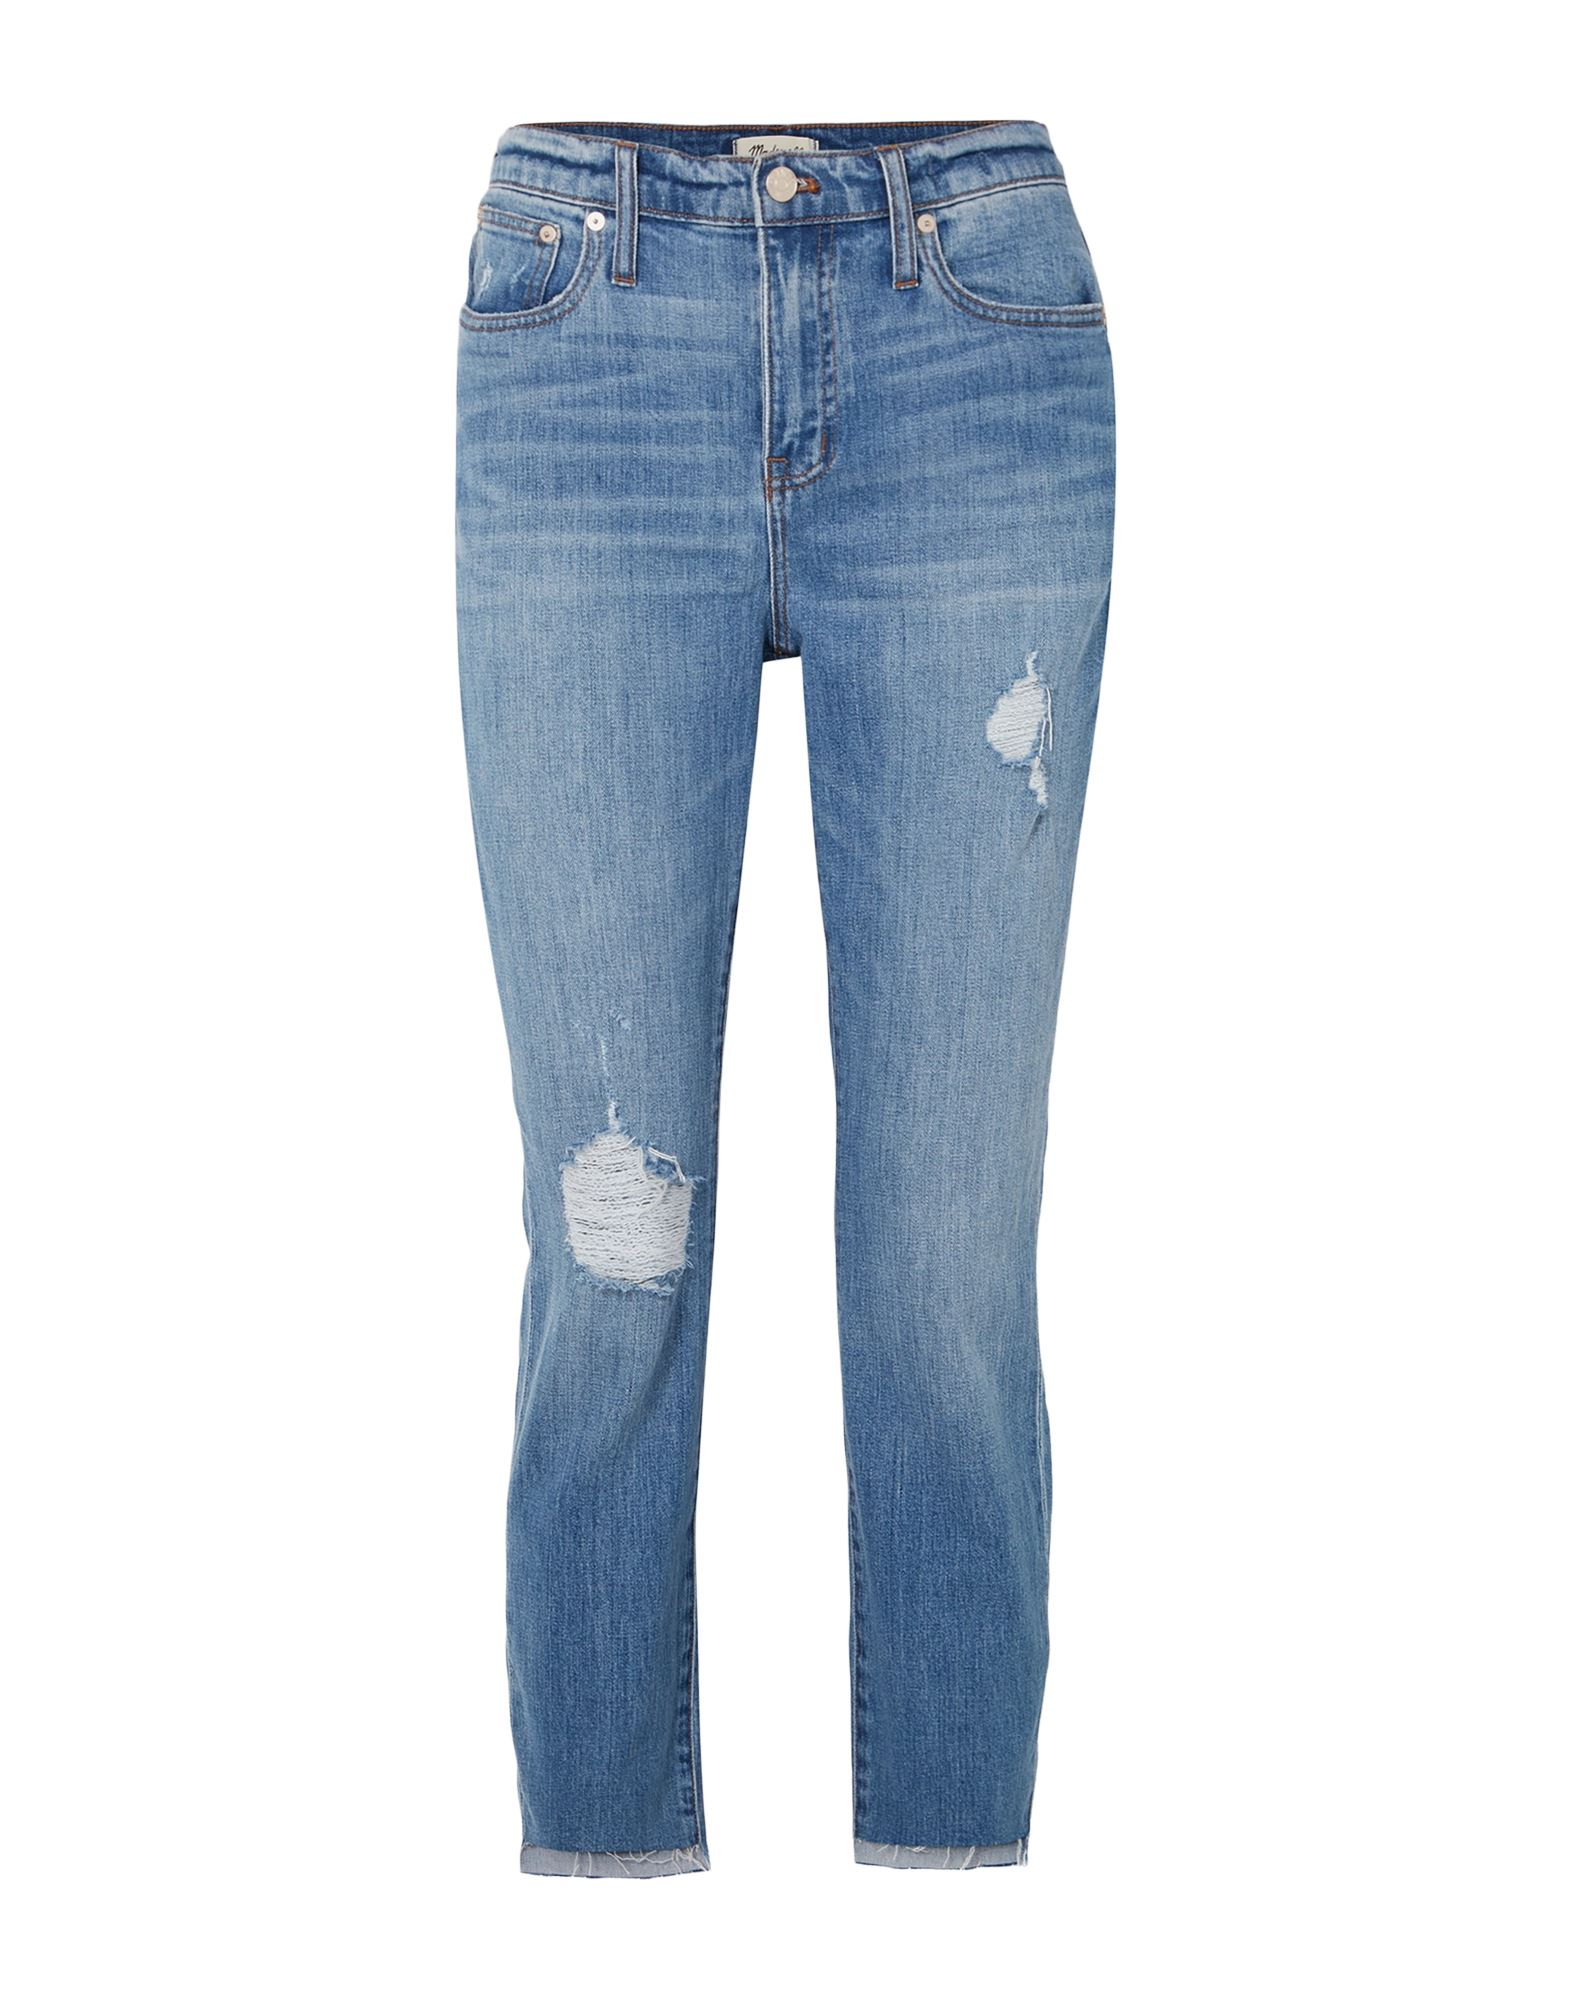 MADEWELL Jeans. denim, logo, torn fabric, faded, solid color, medium wash, high waisted, front closure, button, zip, multipockets, stretch. 98% Cotton, 2% Elastane